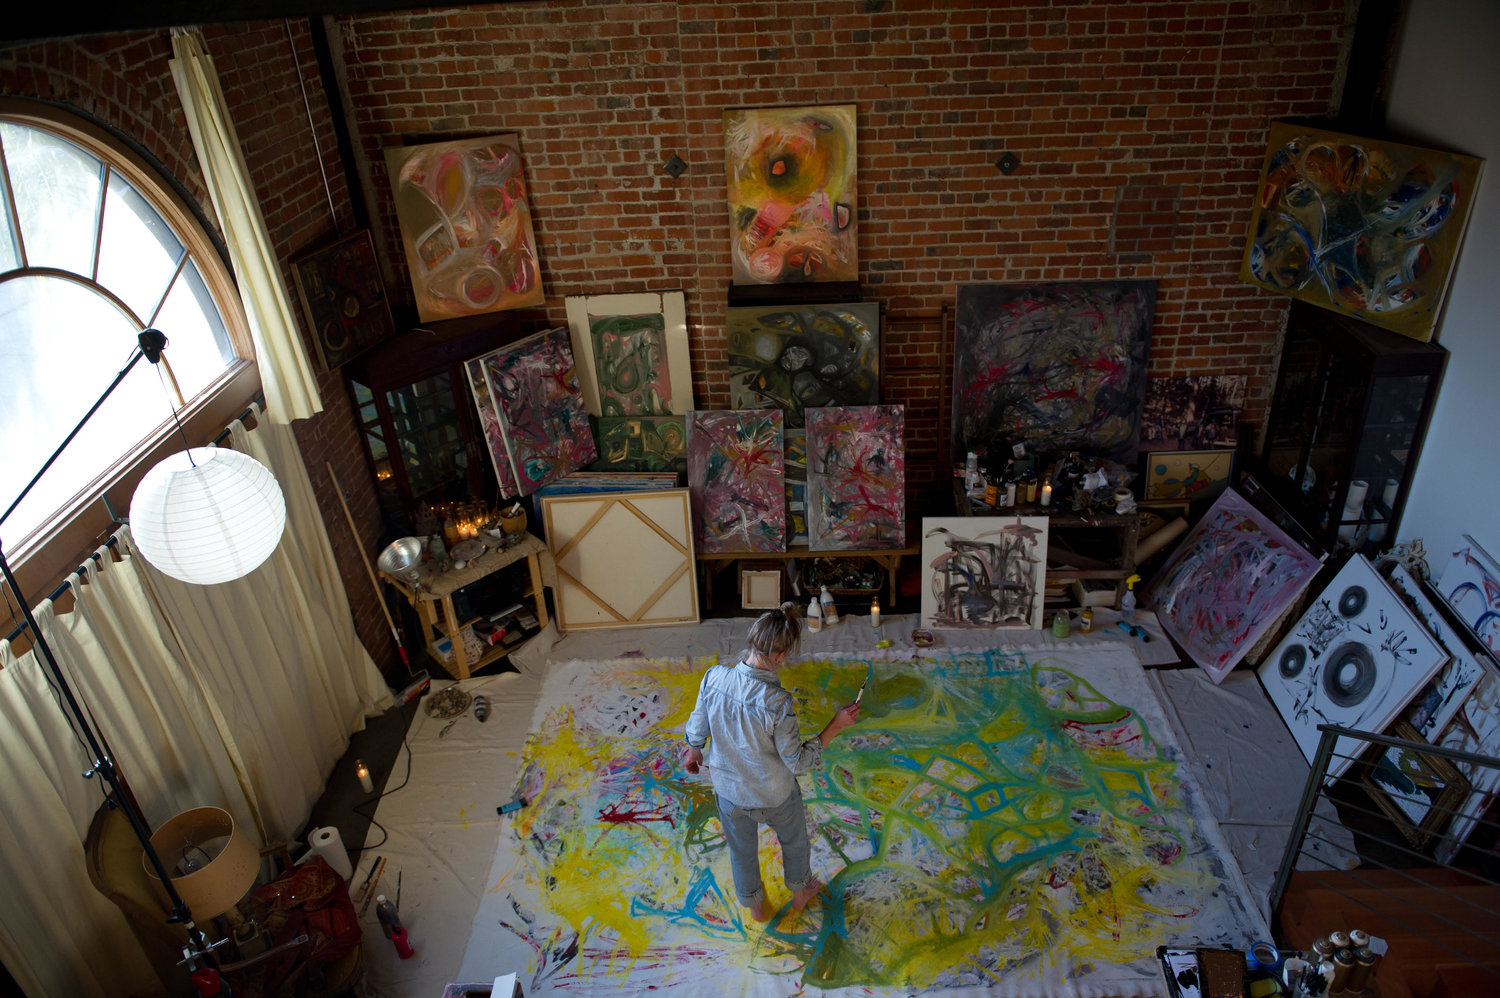 An Artistic Approach to Health: A Conversation with Diane Heron    By Fan Liu